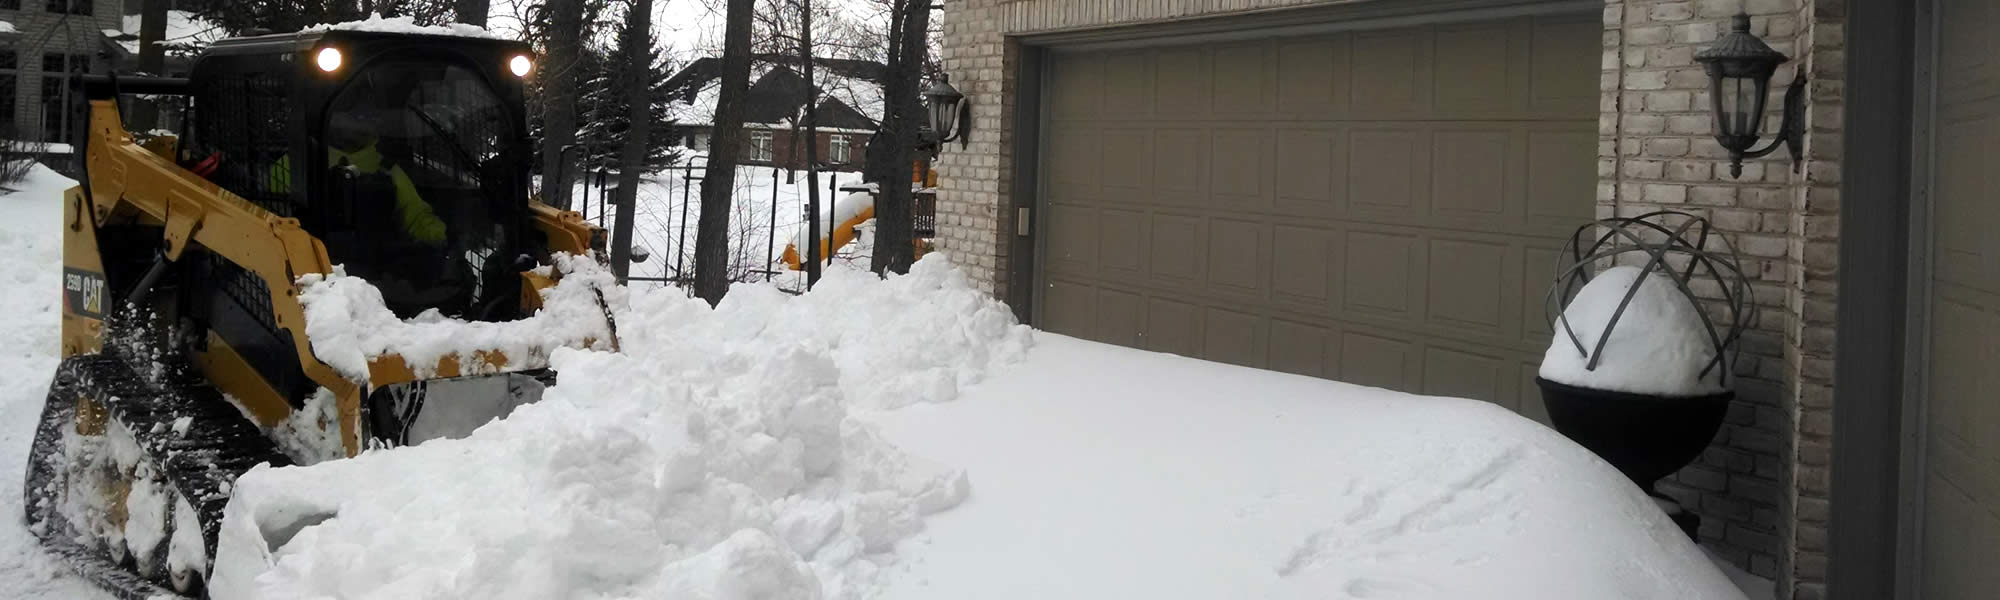 Bellevue Snow and Ice Removal Services near me